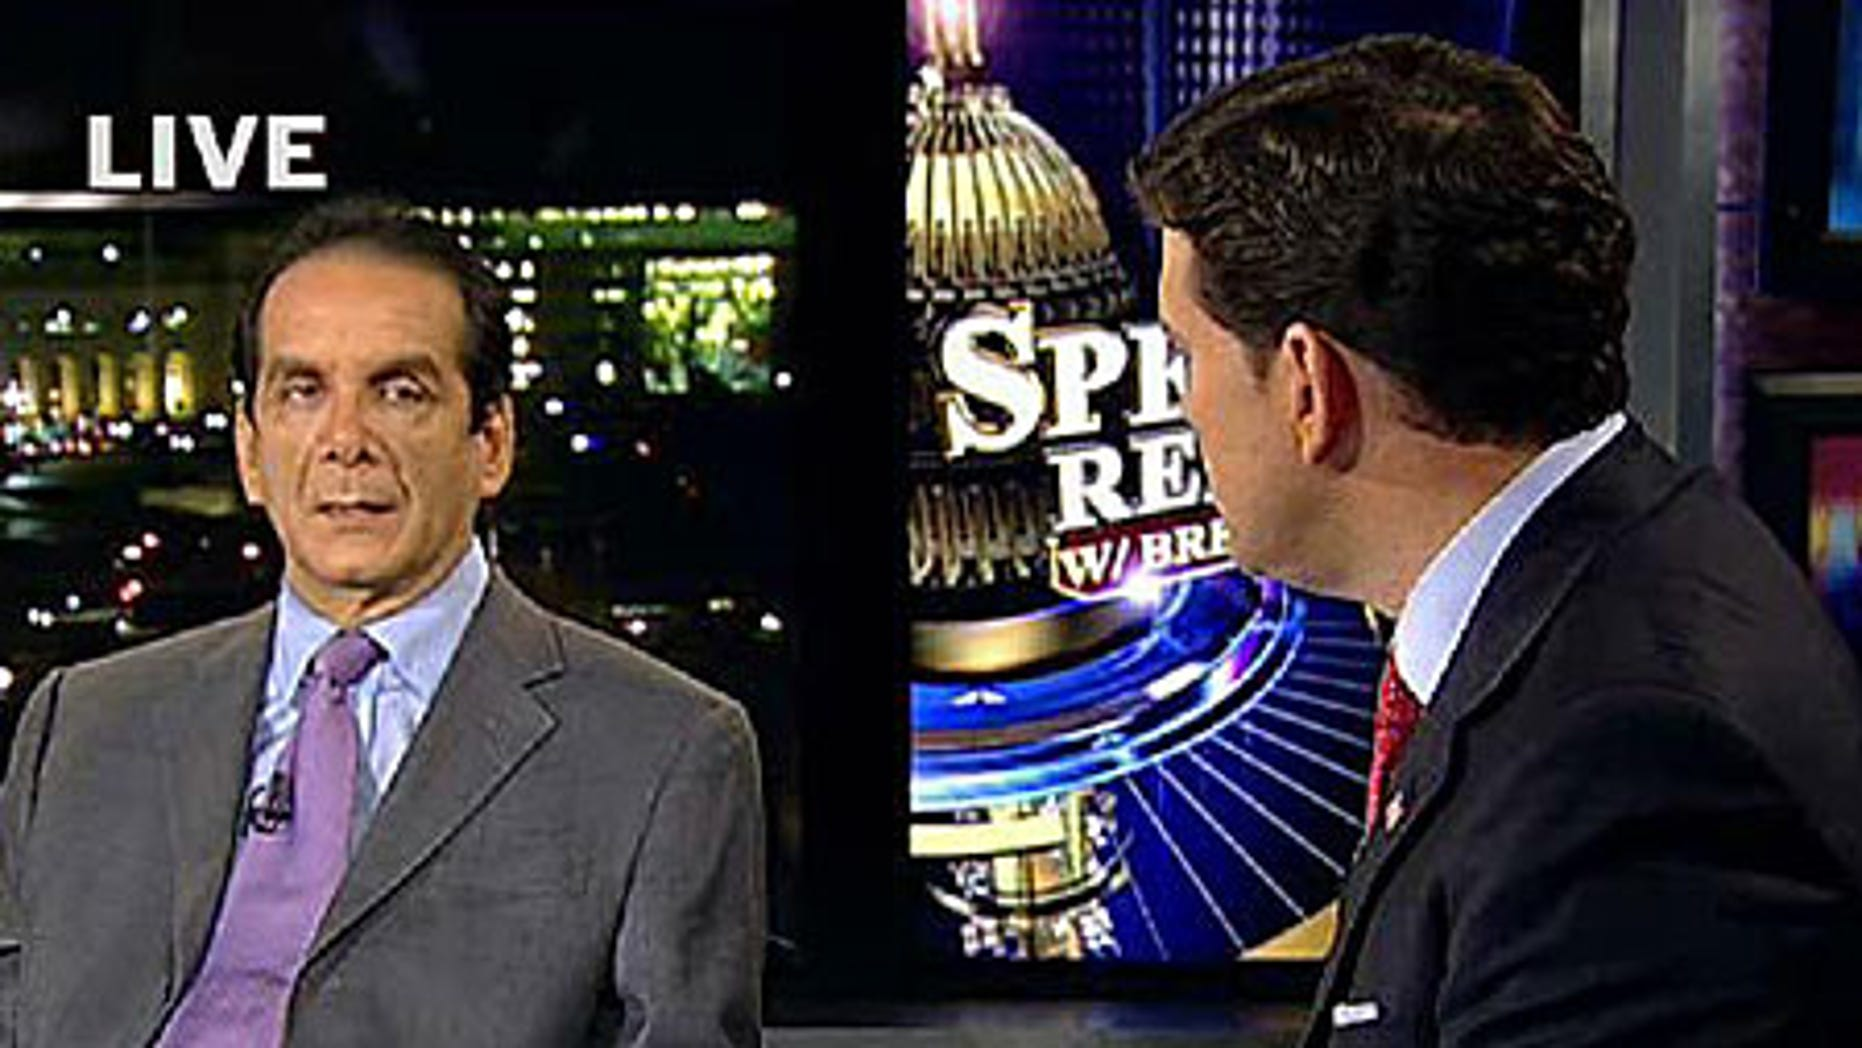 FOX News contributor Charles Kondracke with host Bret Baier